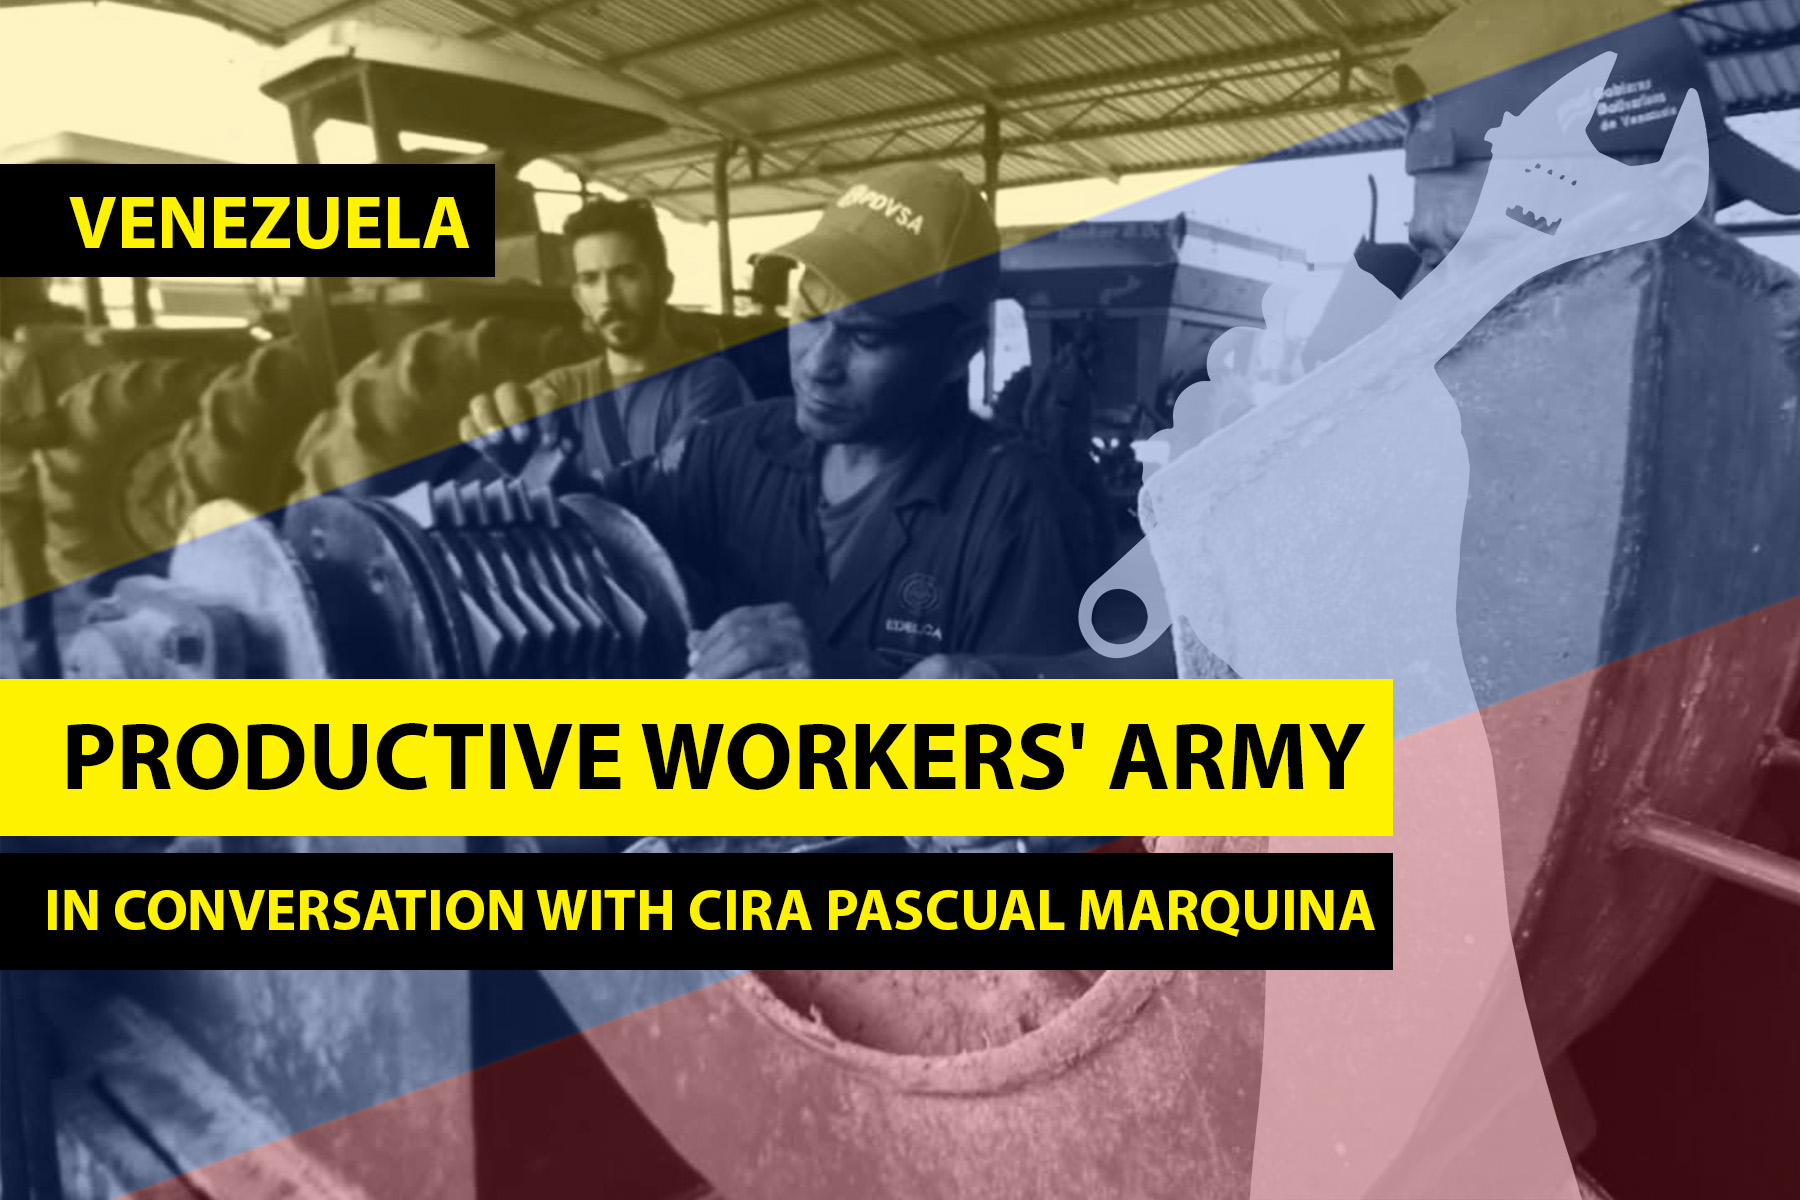 What is Venezuela's Productive Workers' Army?